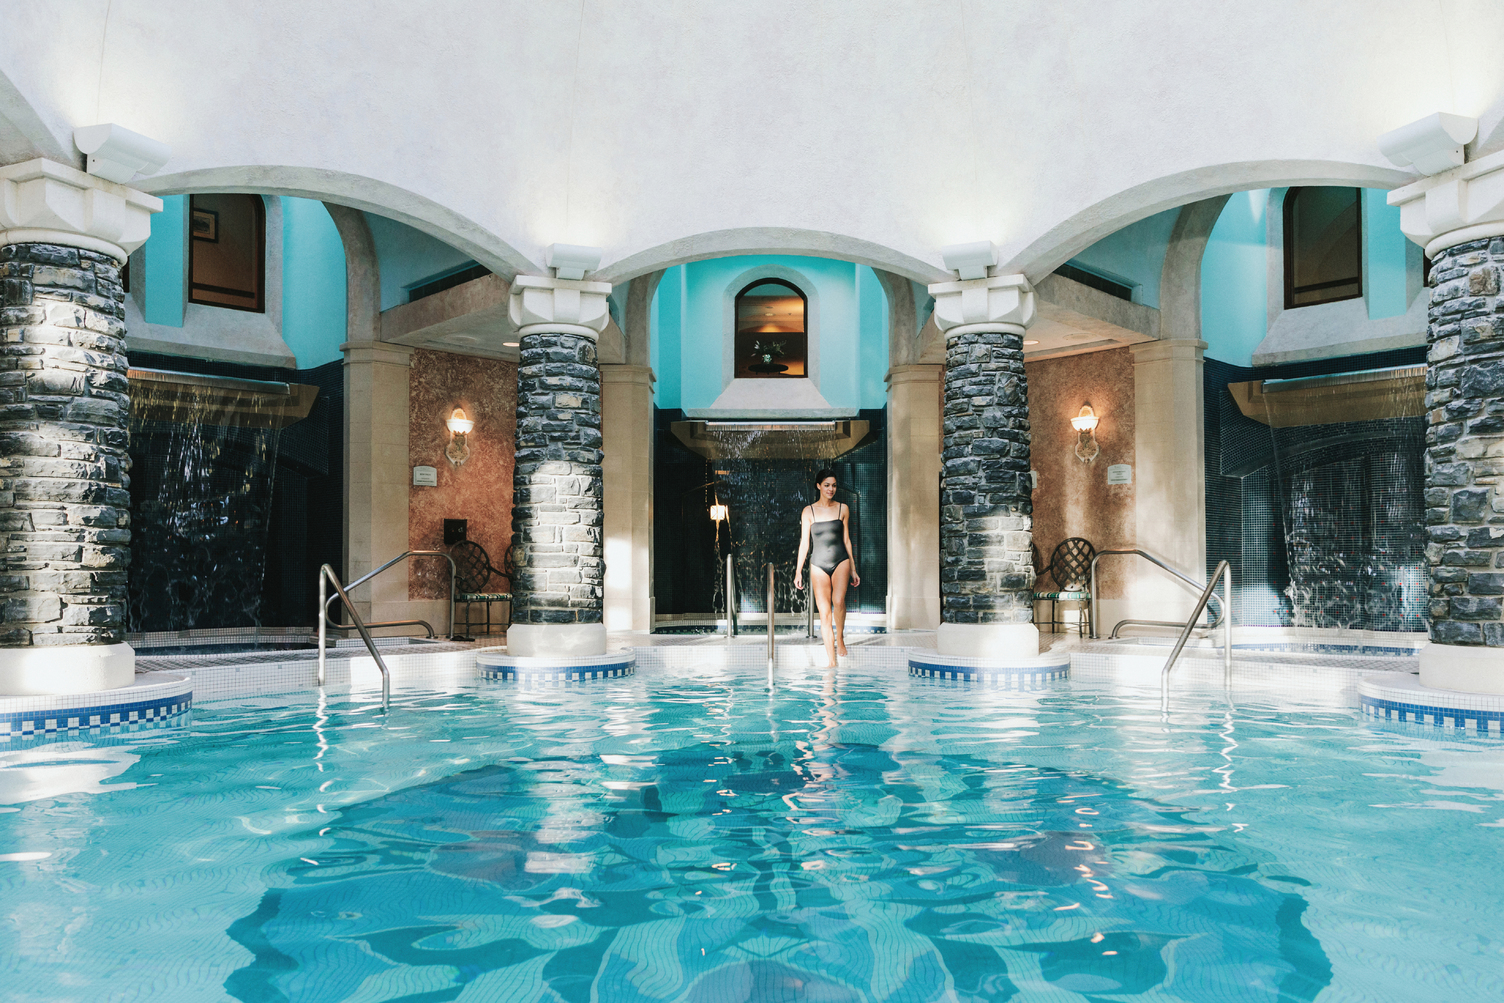 A woman walks into the mineral pool at the Fairmont Banff Springs